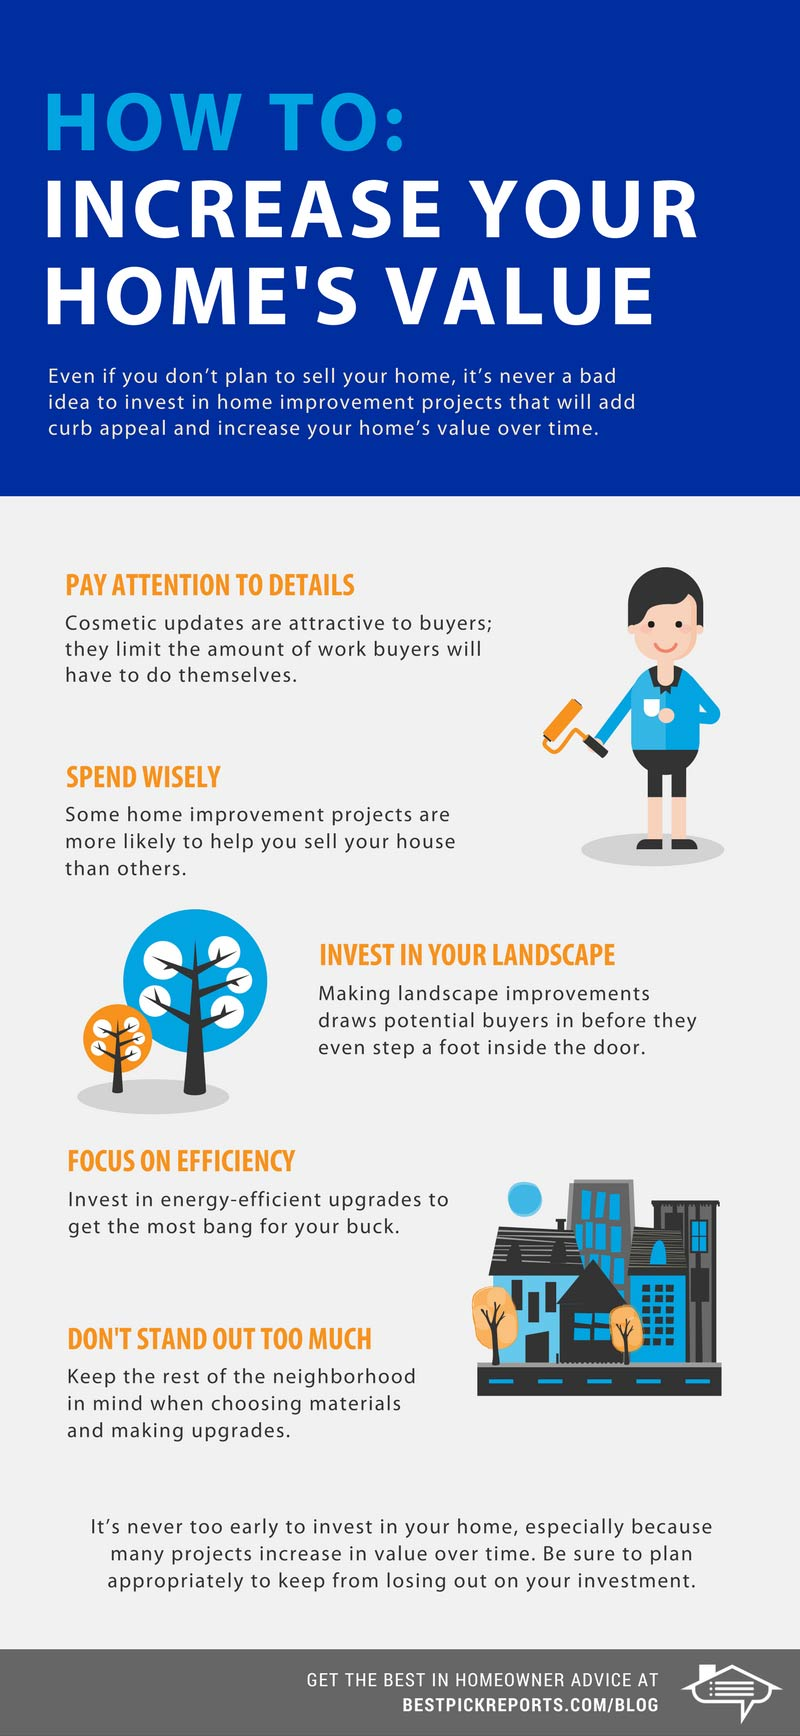 How to increase your home's value infographic